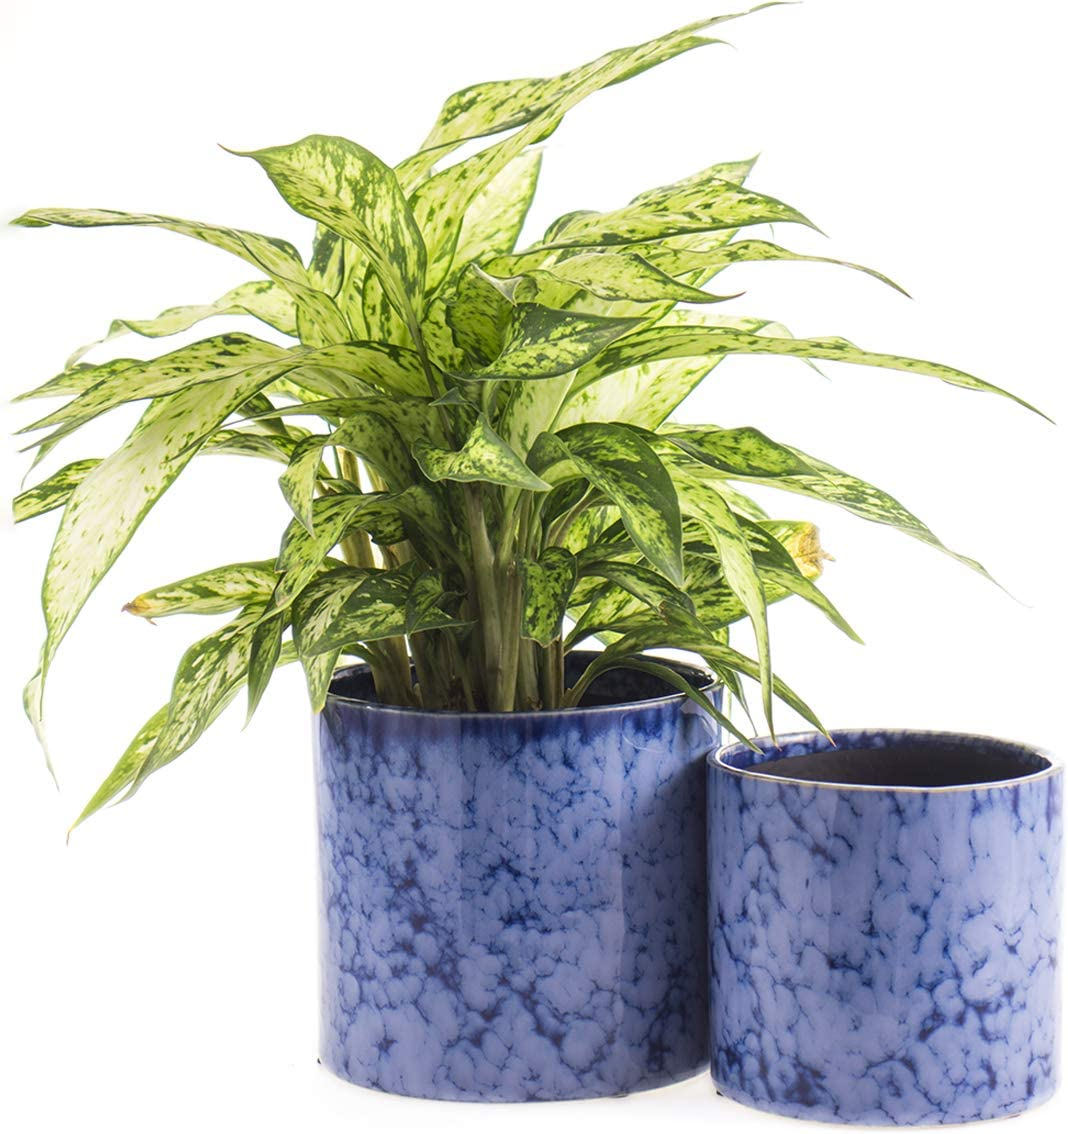 "KYY Ceramic Planters Garden Flower Pots with Drainage Hole 5.5"" and 4.5"" Modern Plant Pot Indoor Outdoor Set of 2 (Blue)"